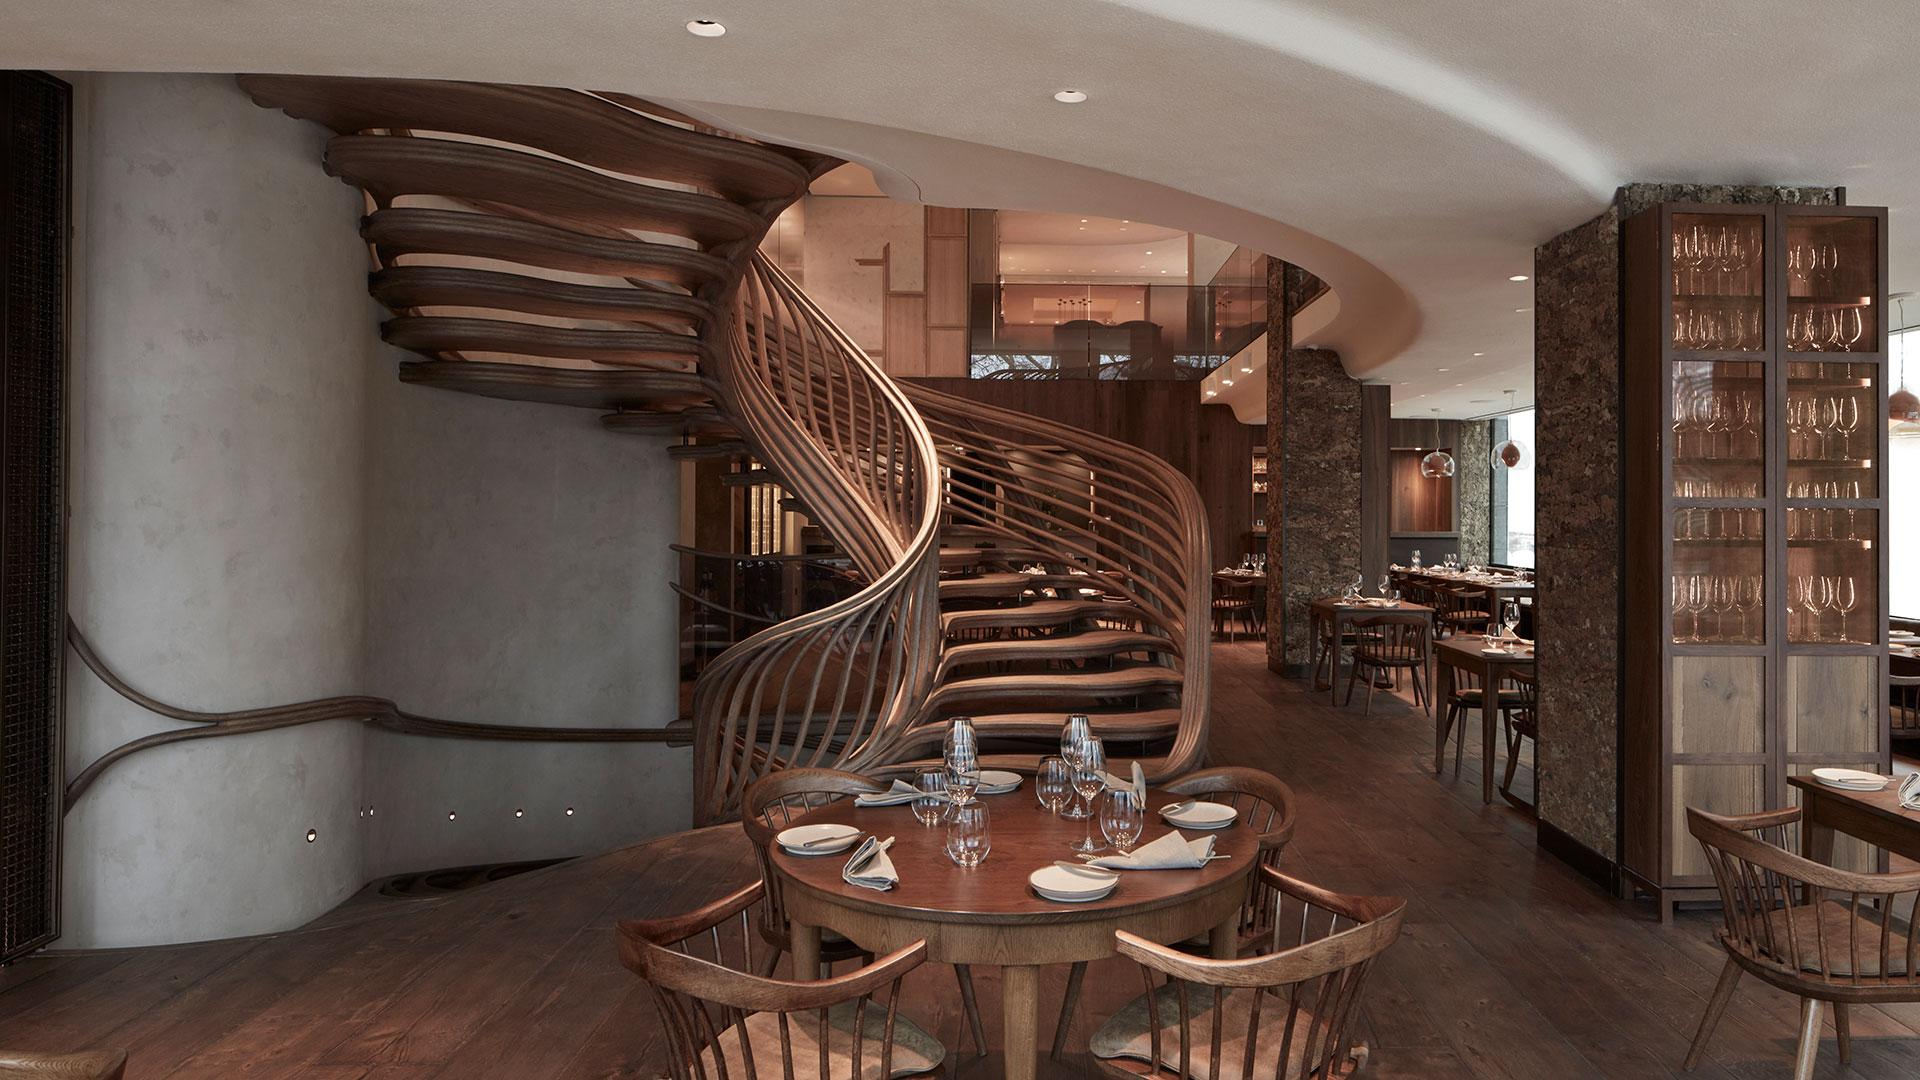 The dining room at Hide in Mayfair